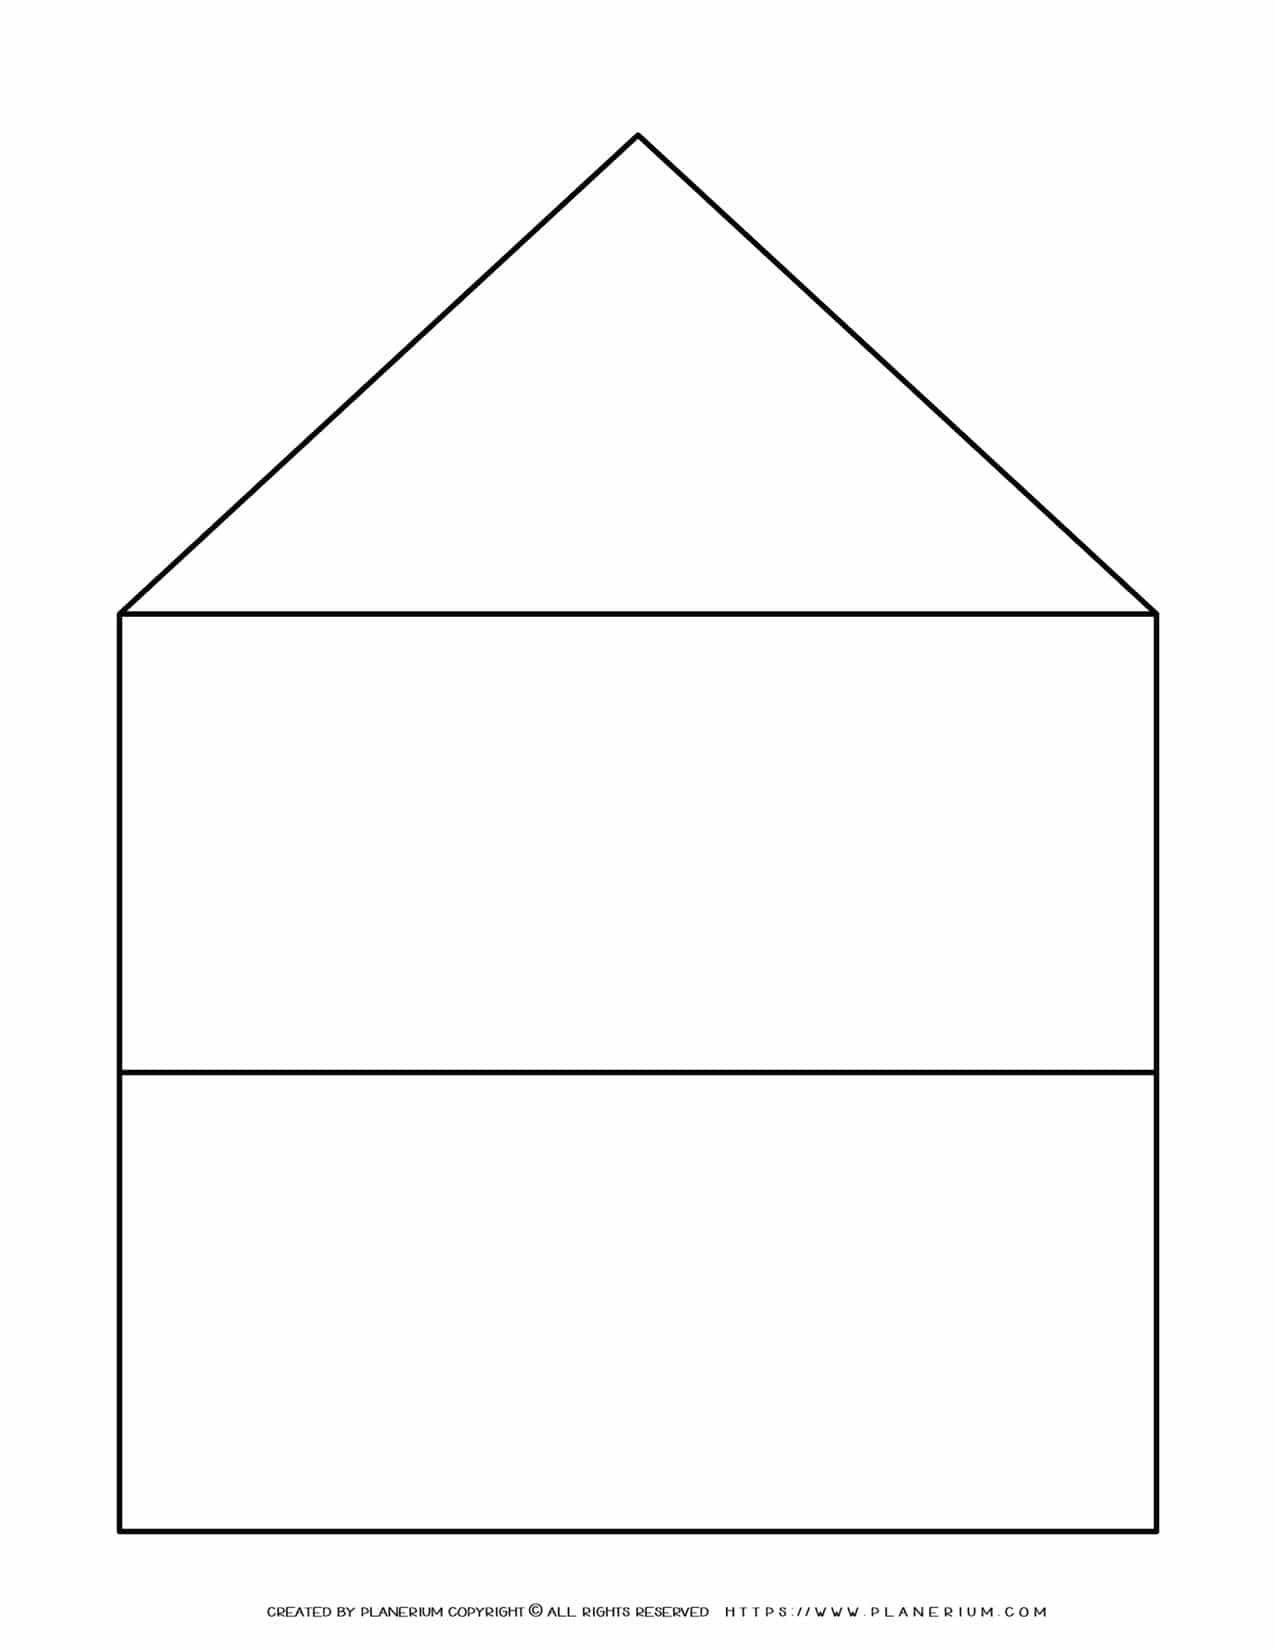 Graphic Organizer Templates - House Chart with Two Rows | Planerium